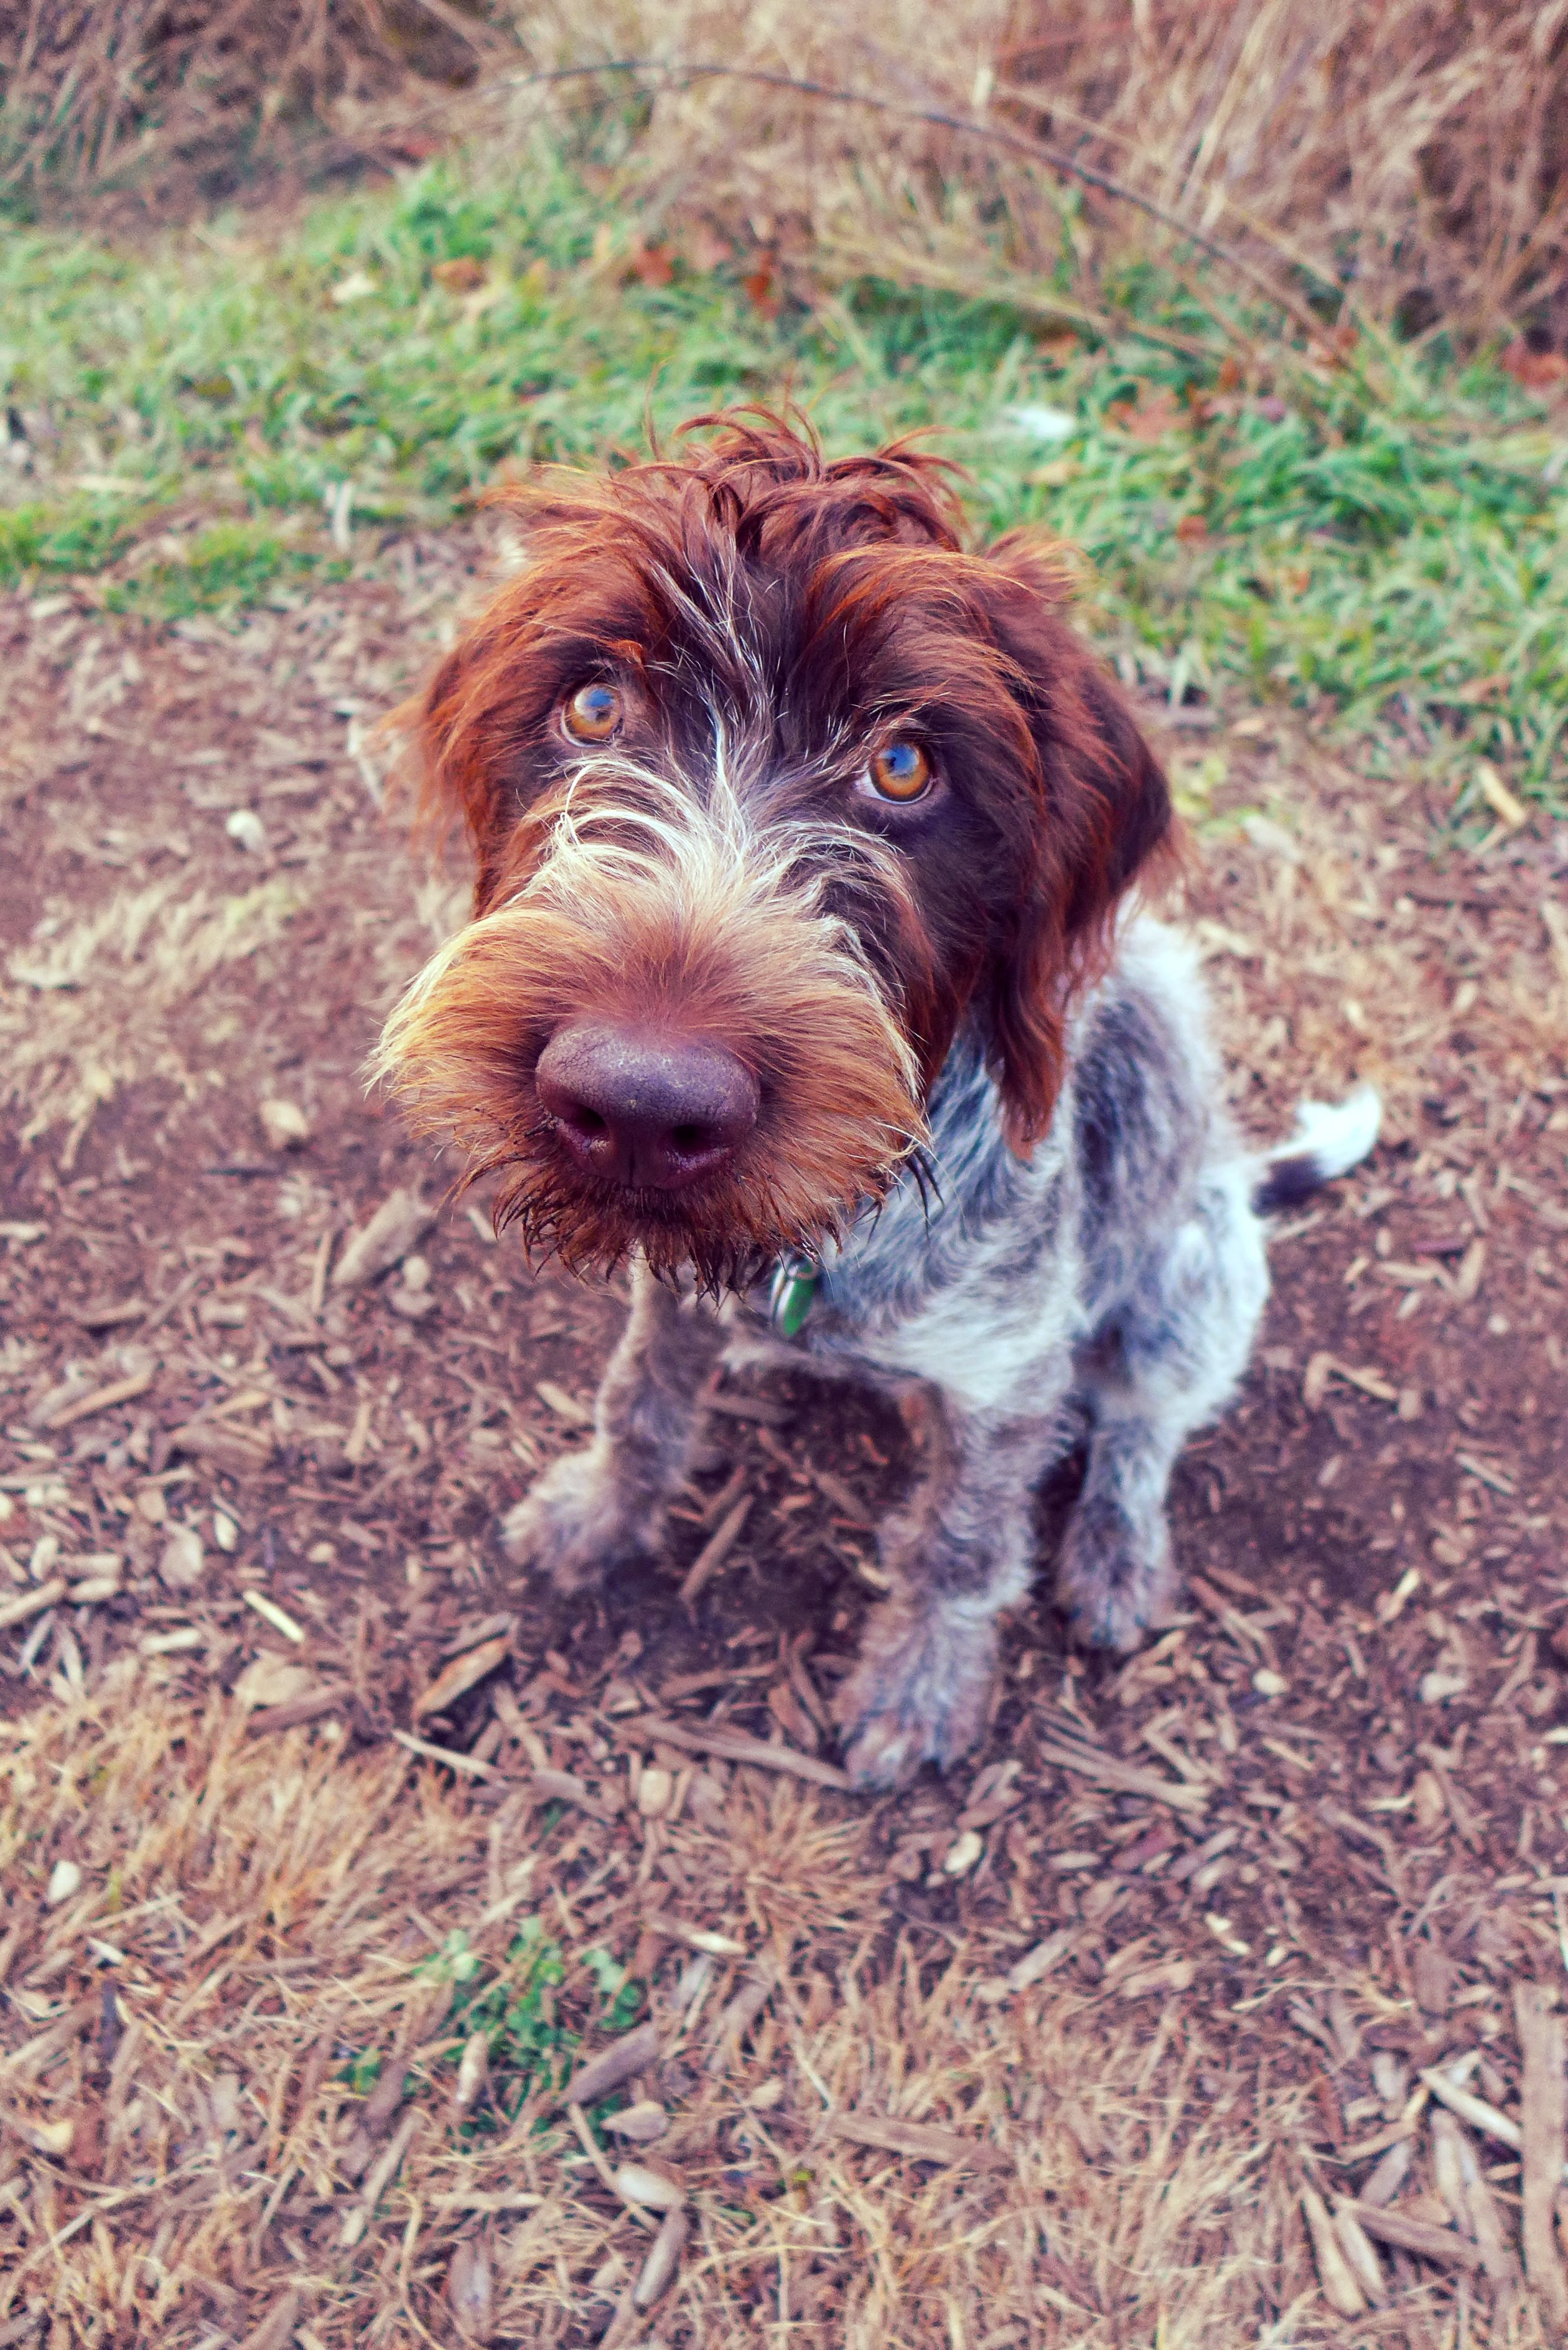 Wirehaired Pointing Griffon. Indy, after a 2 hour walk. I think he's ready to go home. =P (11/10/14)